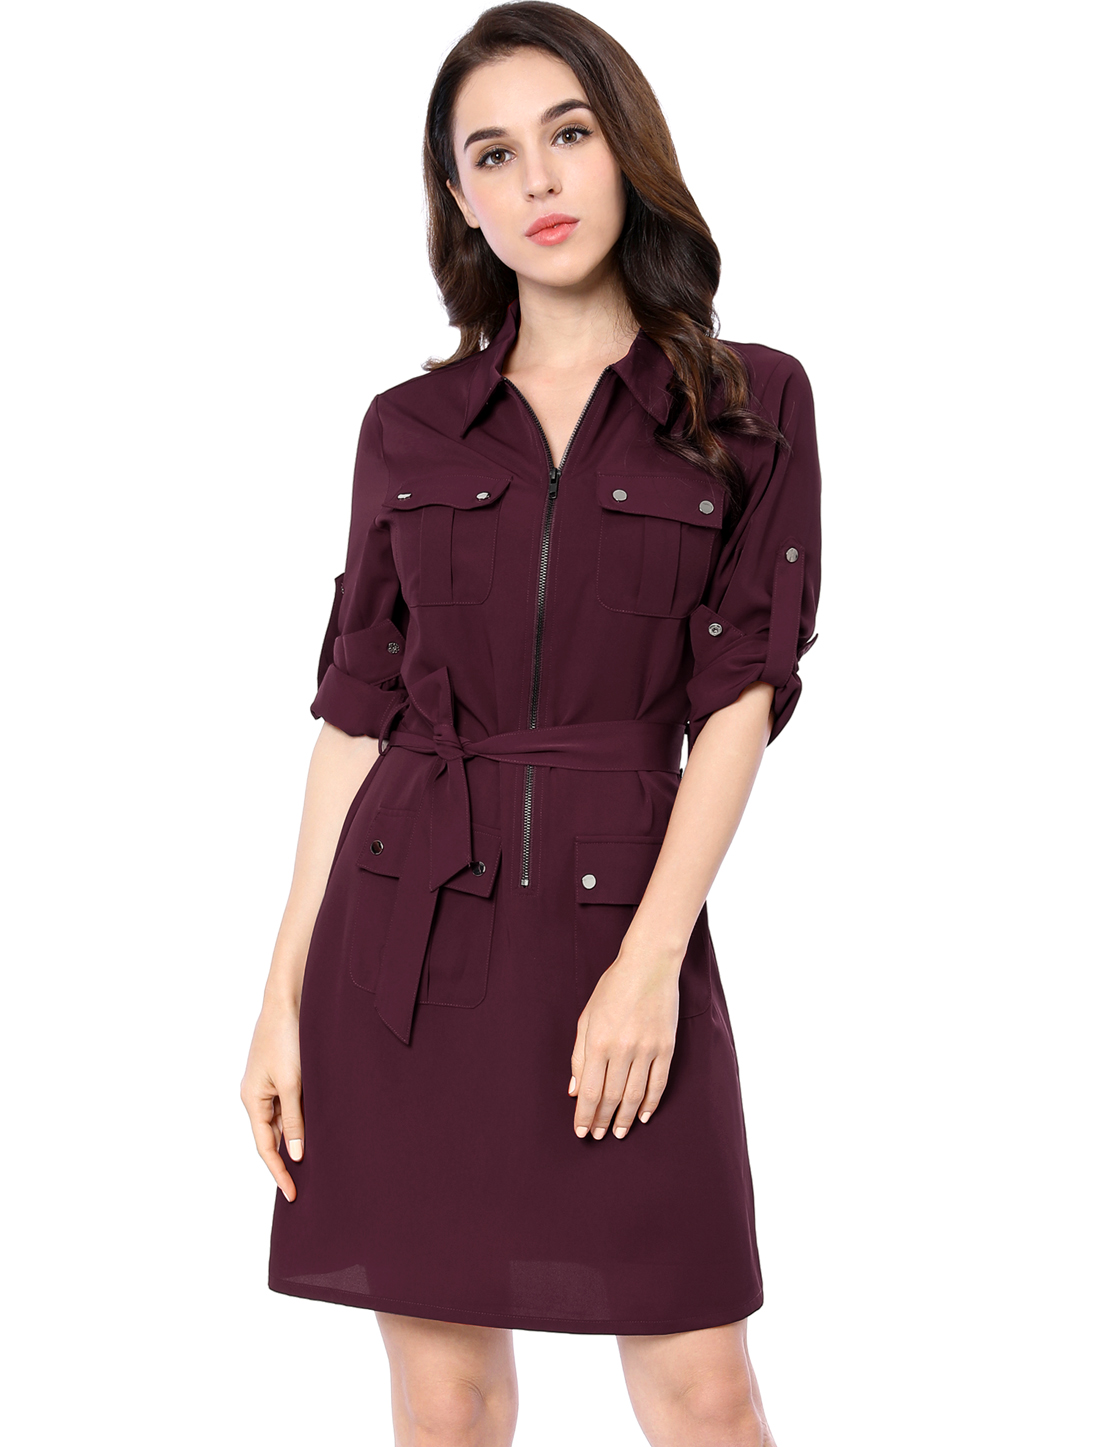 Women Roll Up Sleeves Multi-Pocket Above Knee Belted Shirt Dress Red S